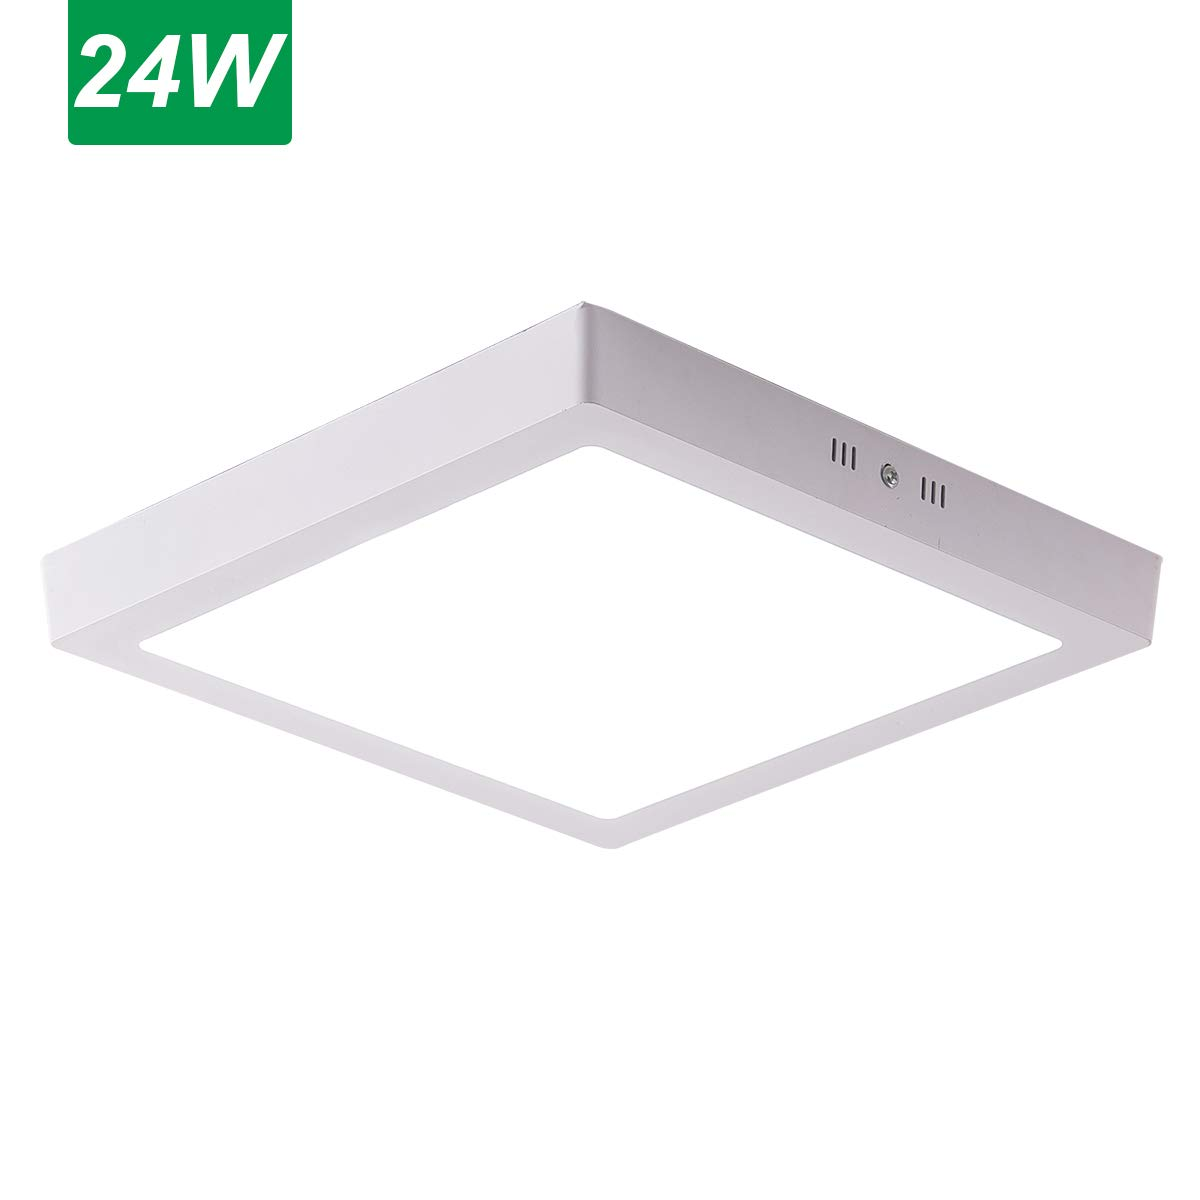 Jaycomey 24W Square Super Bright LED Flush Mounted Ceiling Light Fixtures,Surface Mounted Ceiling Light for Bathroom,Kitchen,Balcony,Garage,Dining Room,Non-Dimmable,Cool White,11.8 Inches